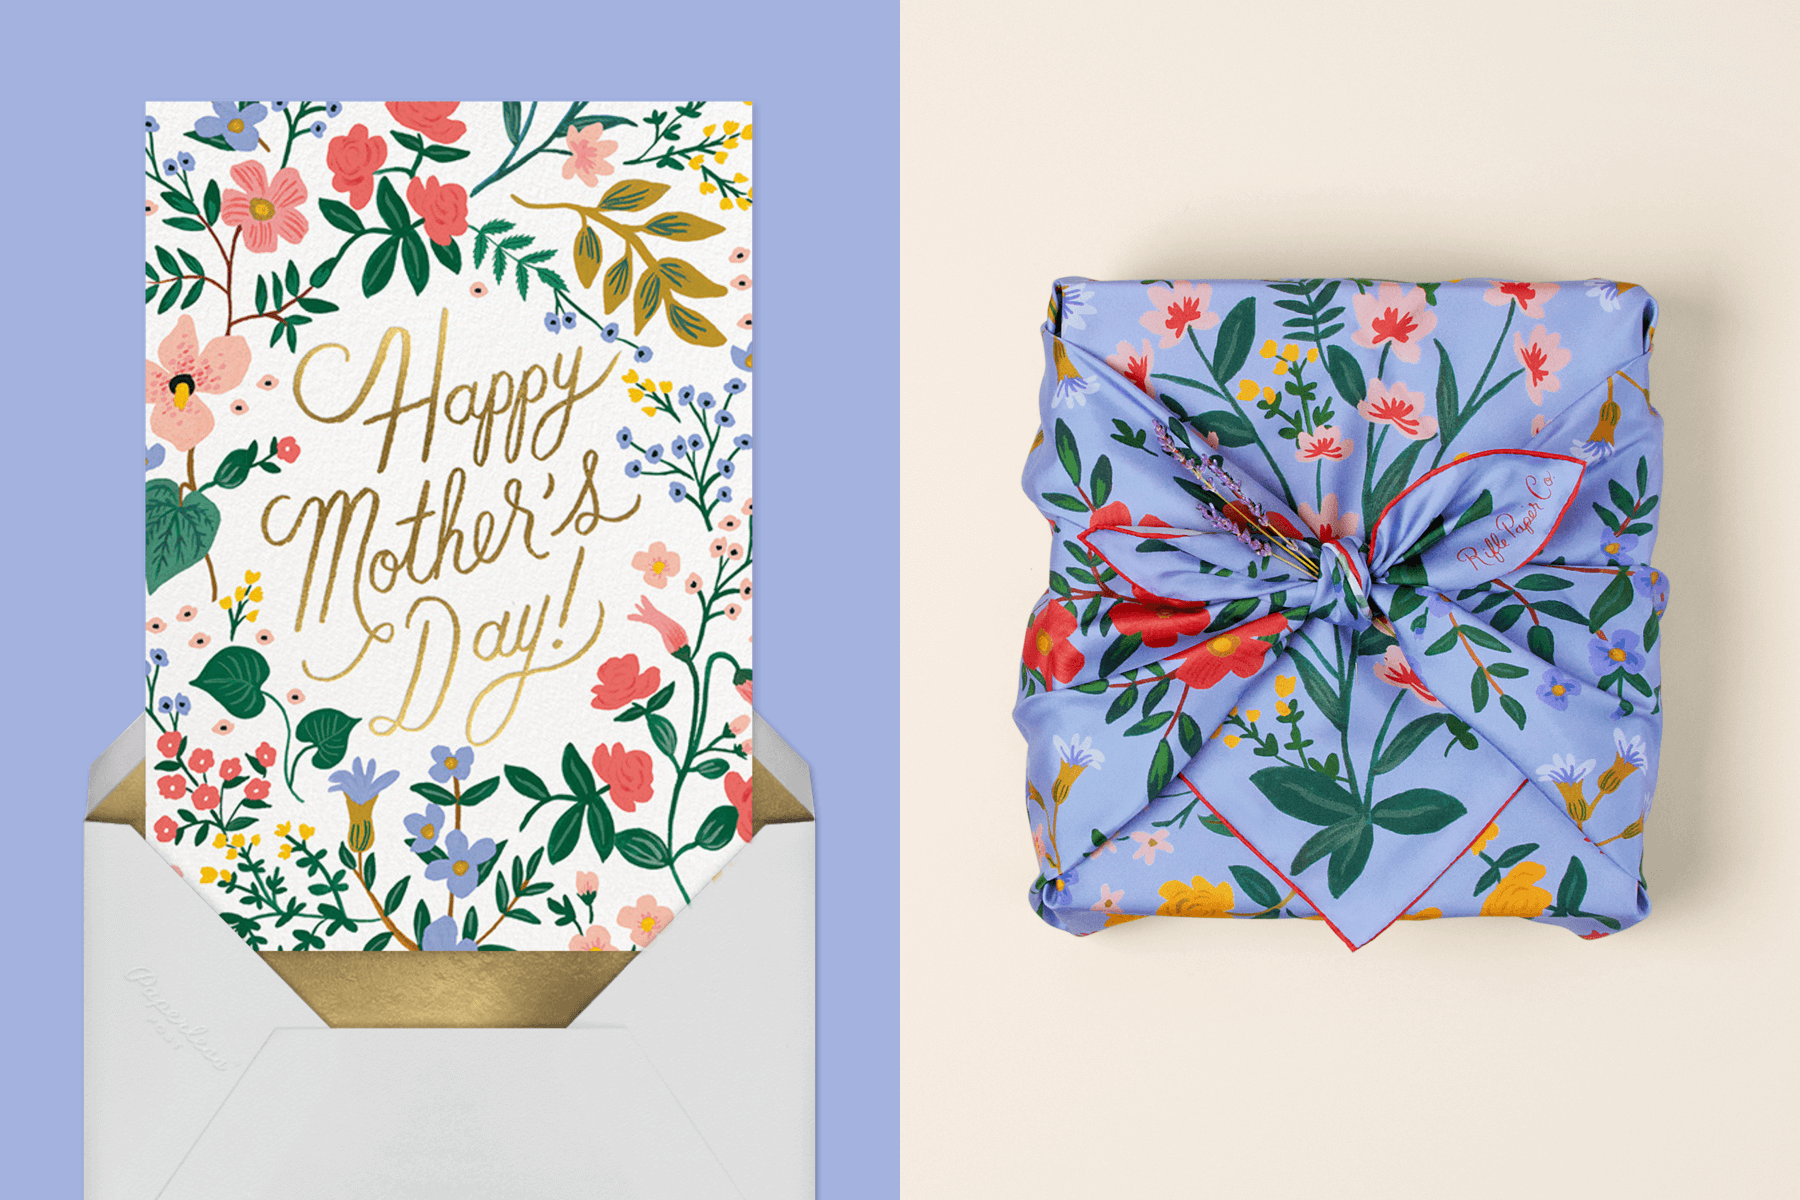 Wildwood Mother's Day by Rifle Paper Co. for Paperless Post | Wildwood Silk Scarf by Rifle Paper Co.